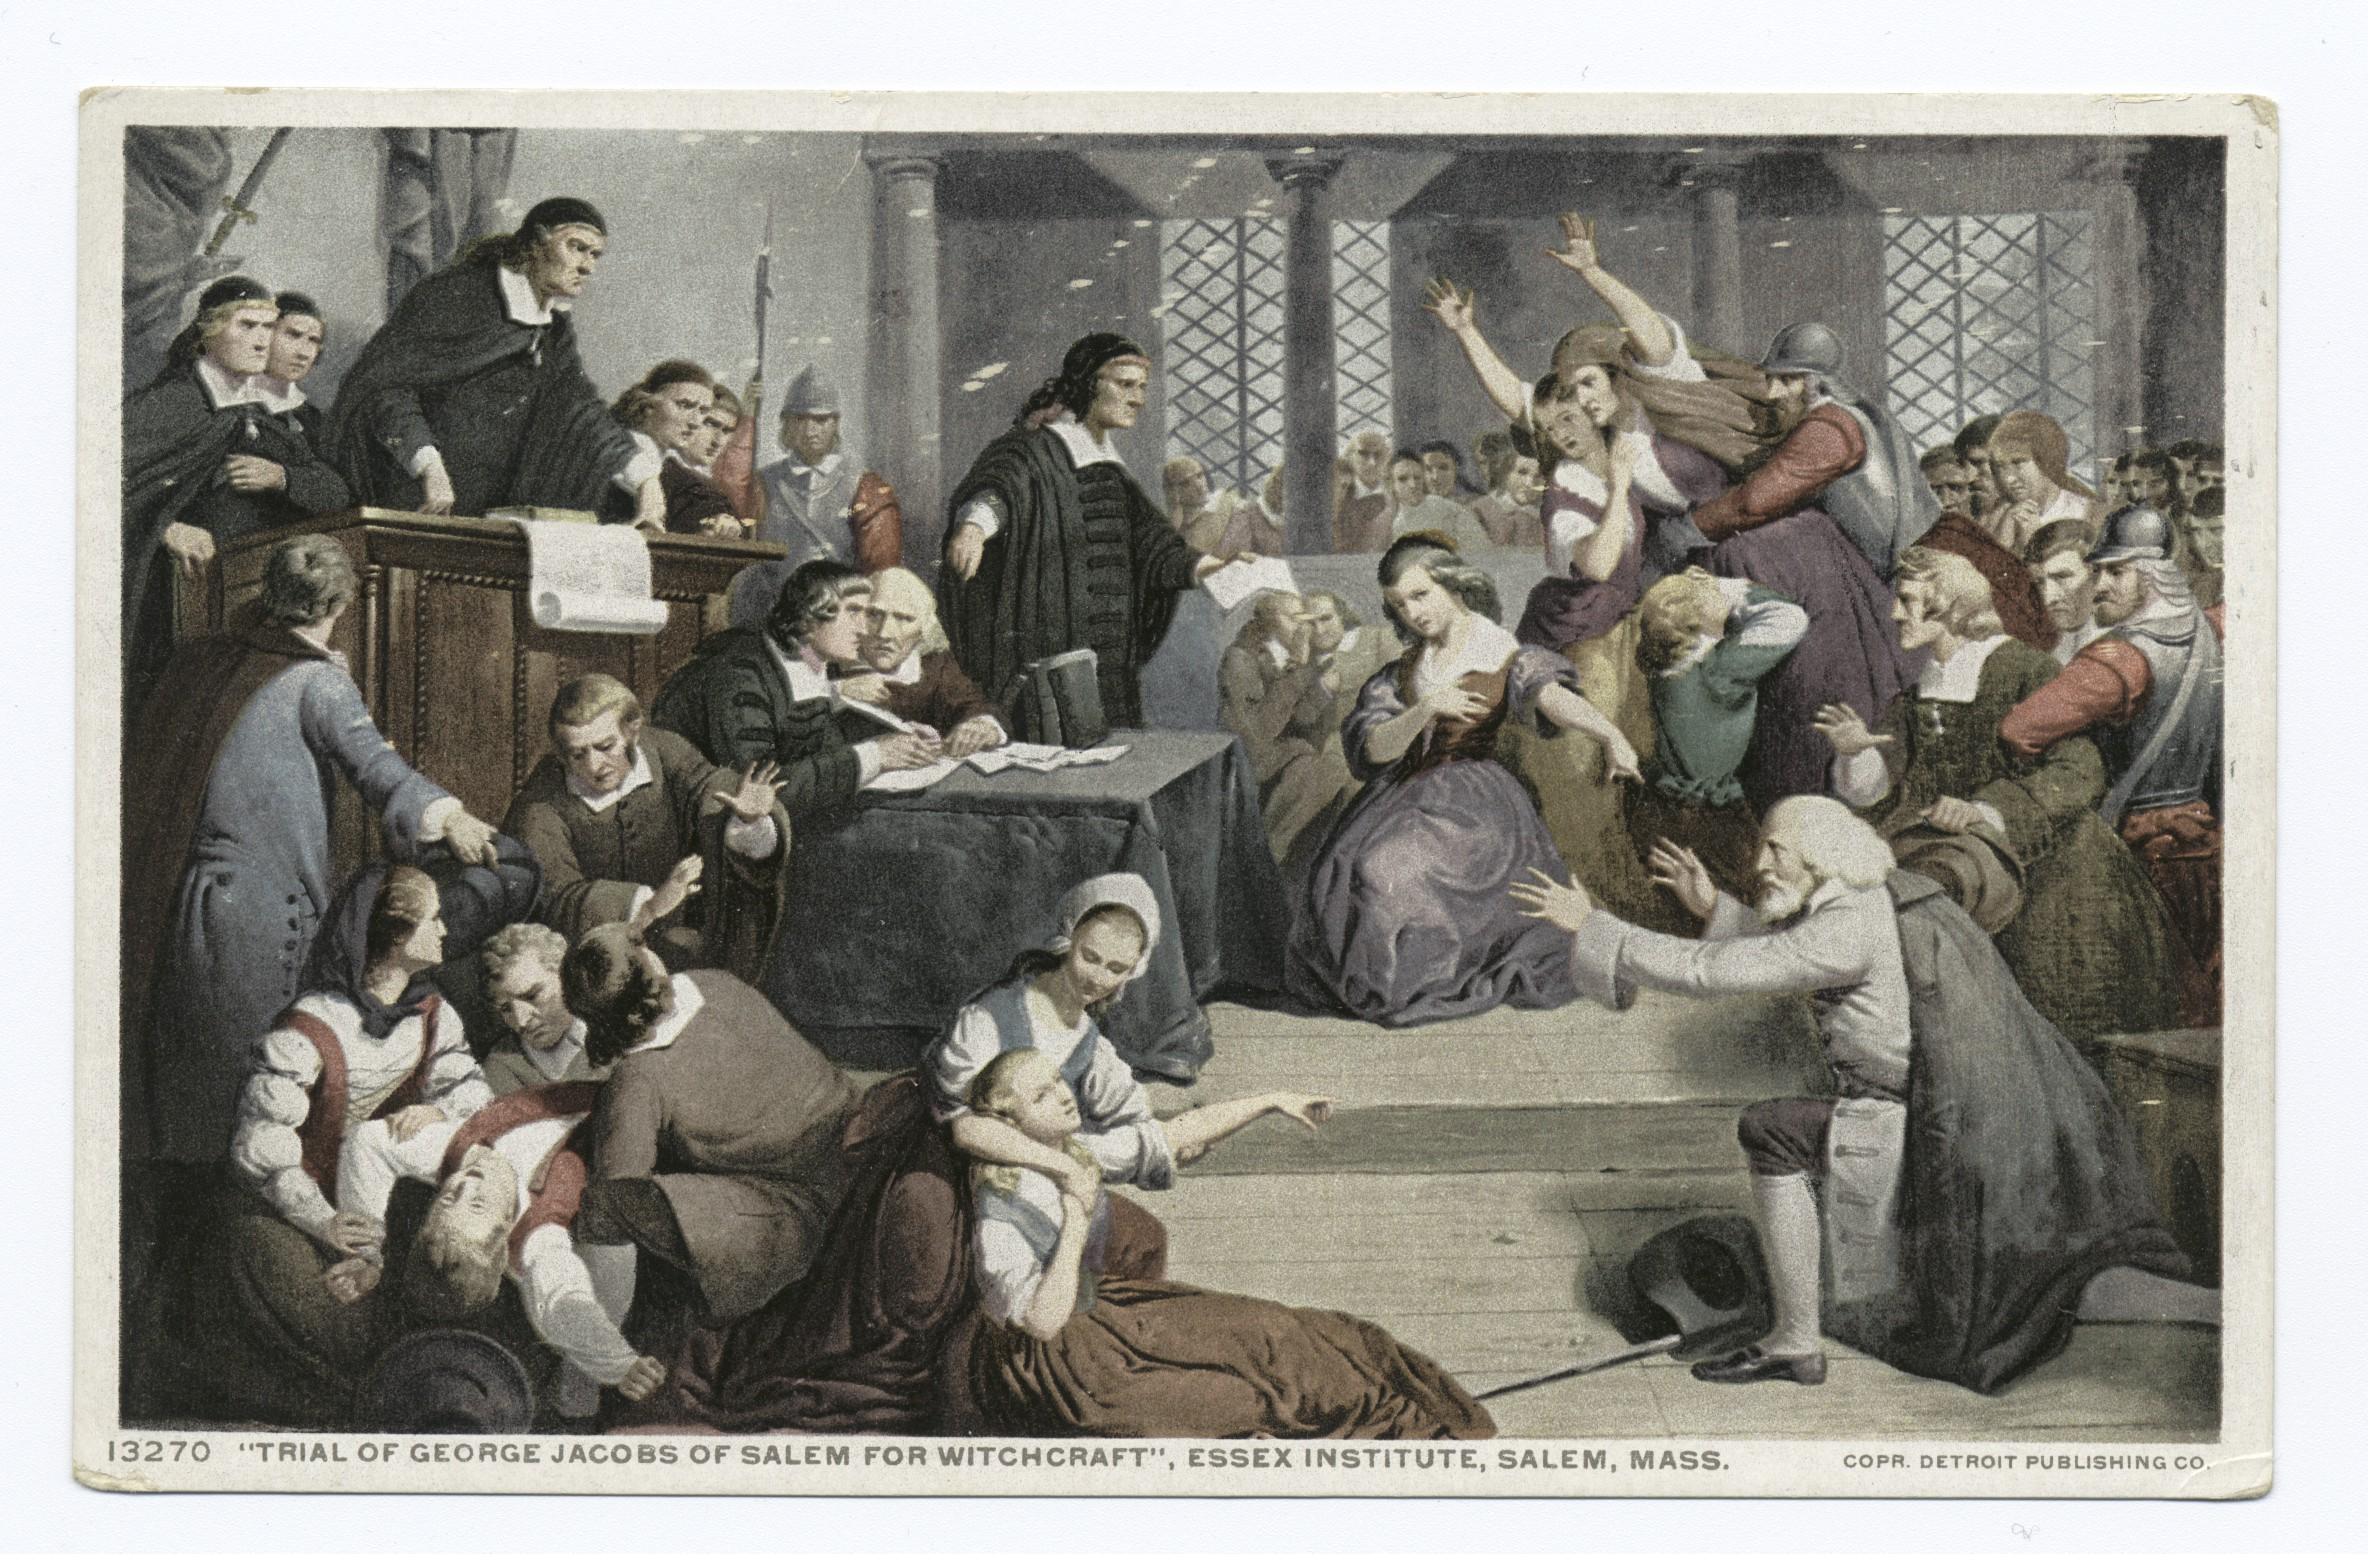 Salem witch trials: Pandemonium in the courtroom as people point and faint